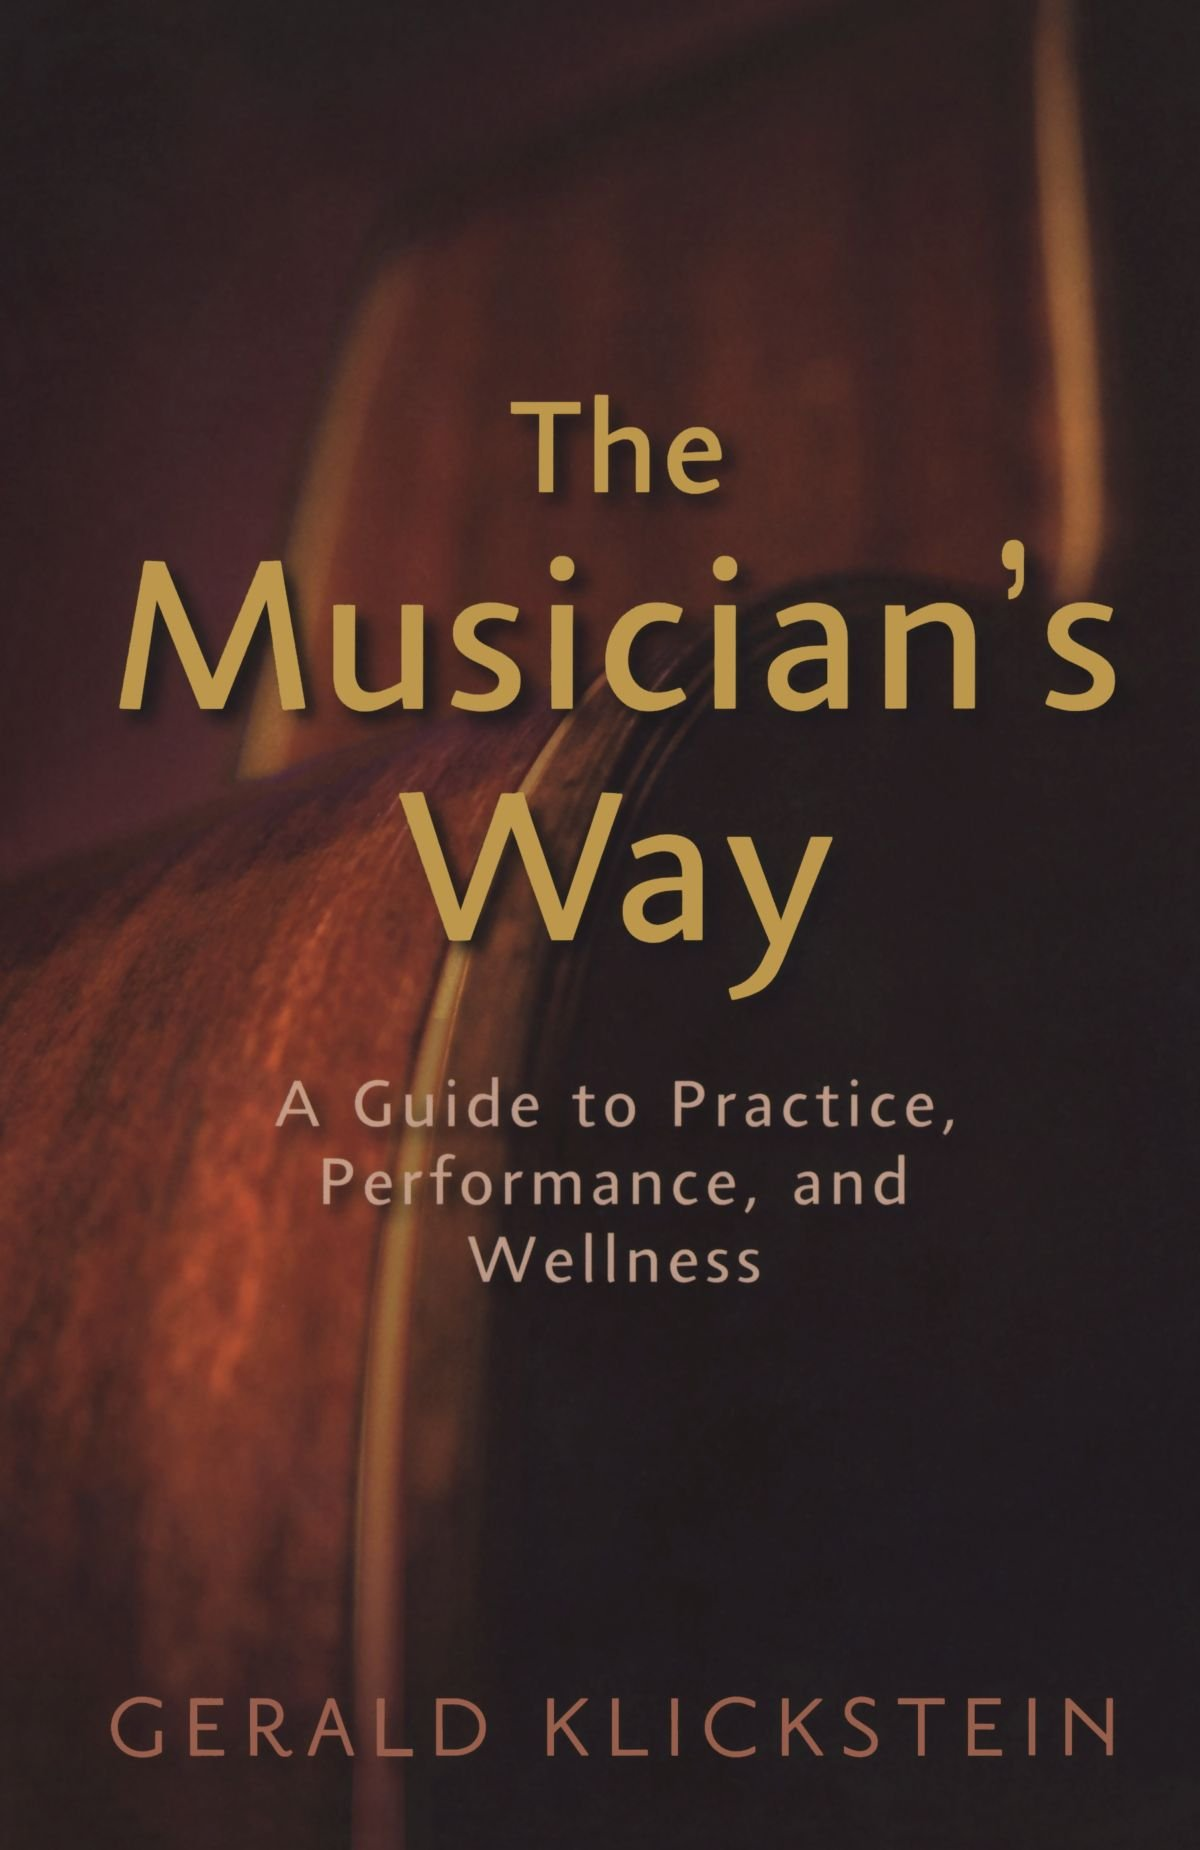 The Musician's Way: A Guide To Practice, Performance, And Wellness:  Amazon: Gerald Klickstein: Fremdsprachige B�cher